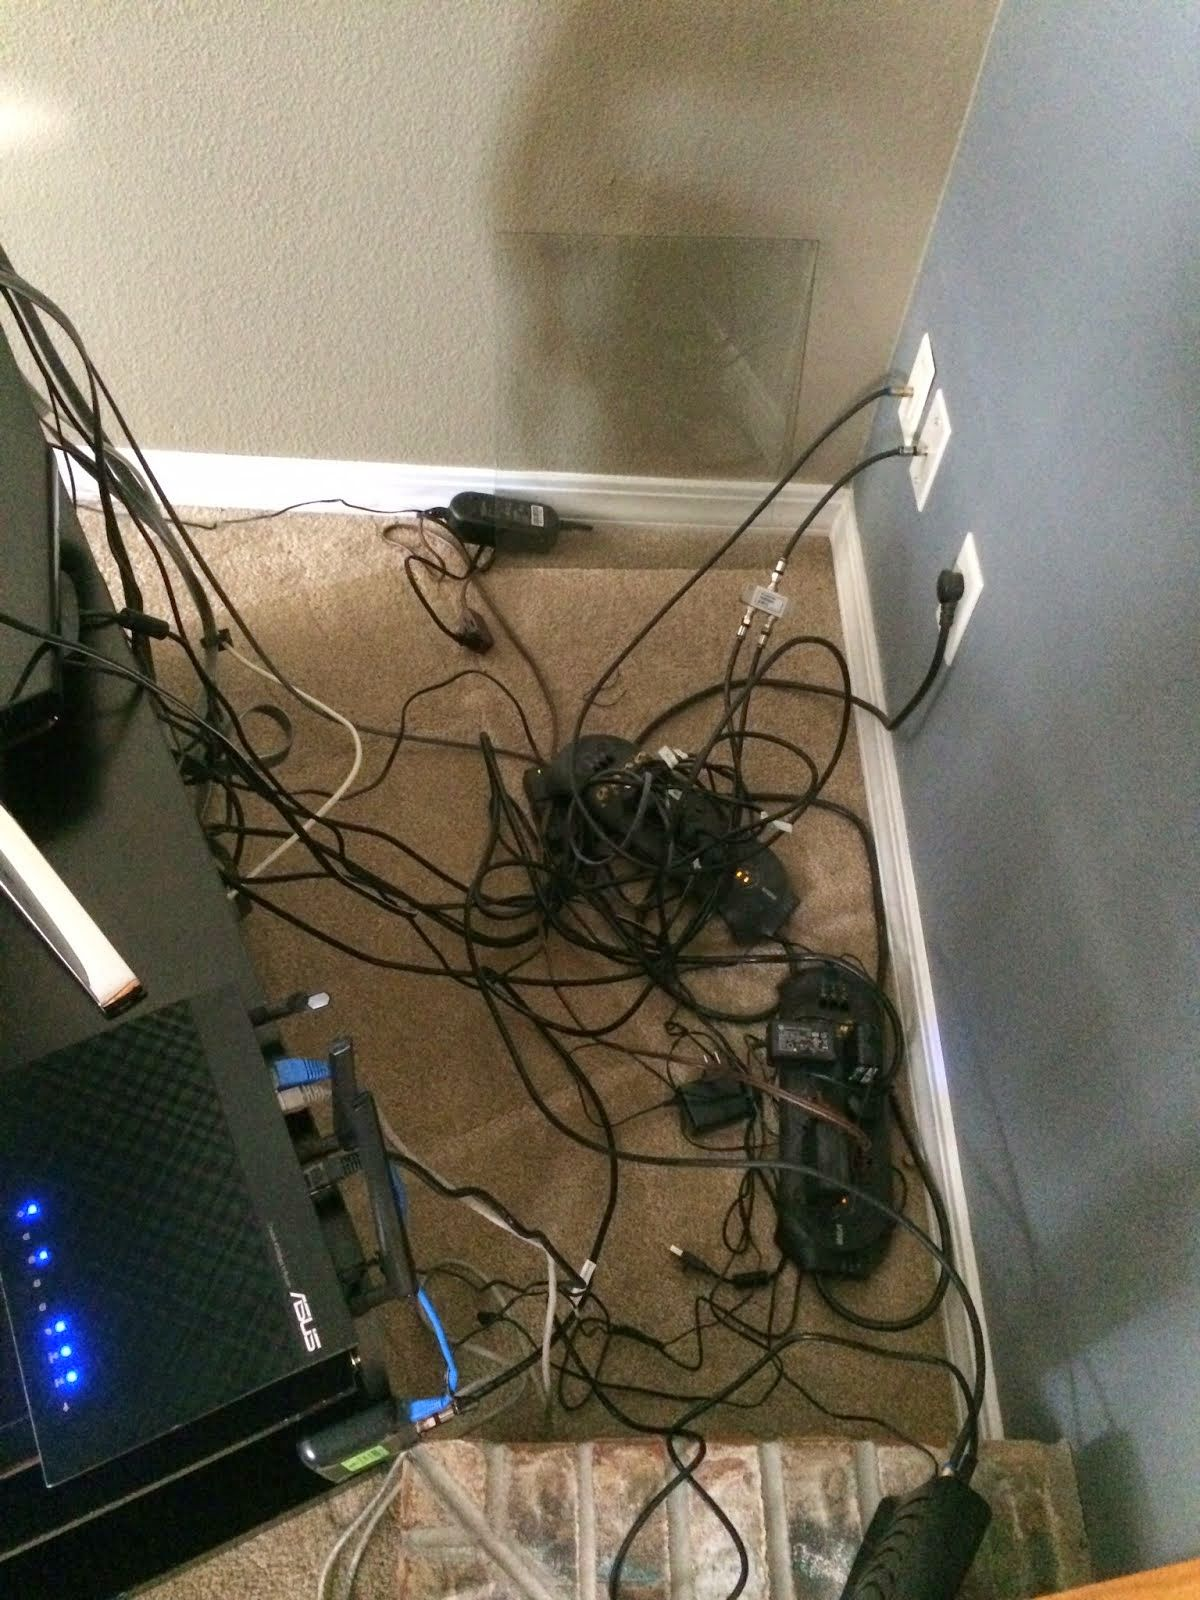 PRETENDING TO BE ORGANIZED: Cords Be Gone!